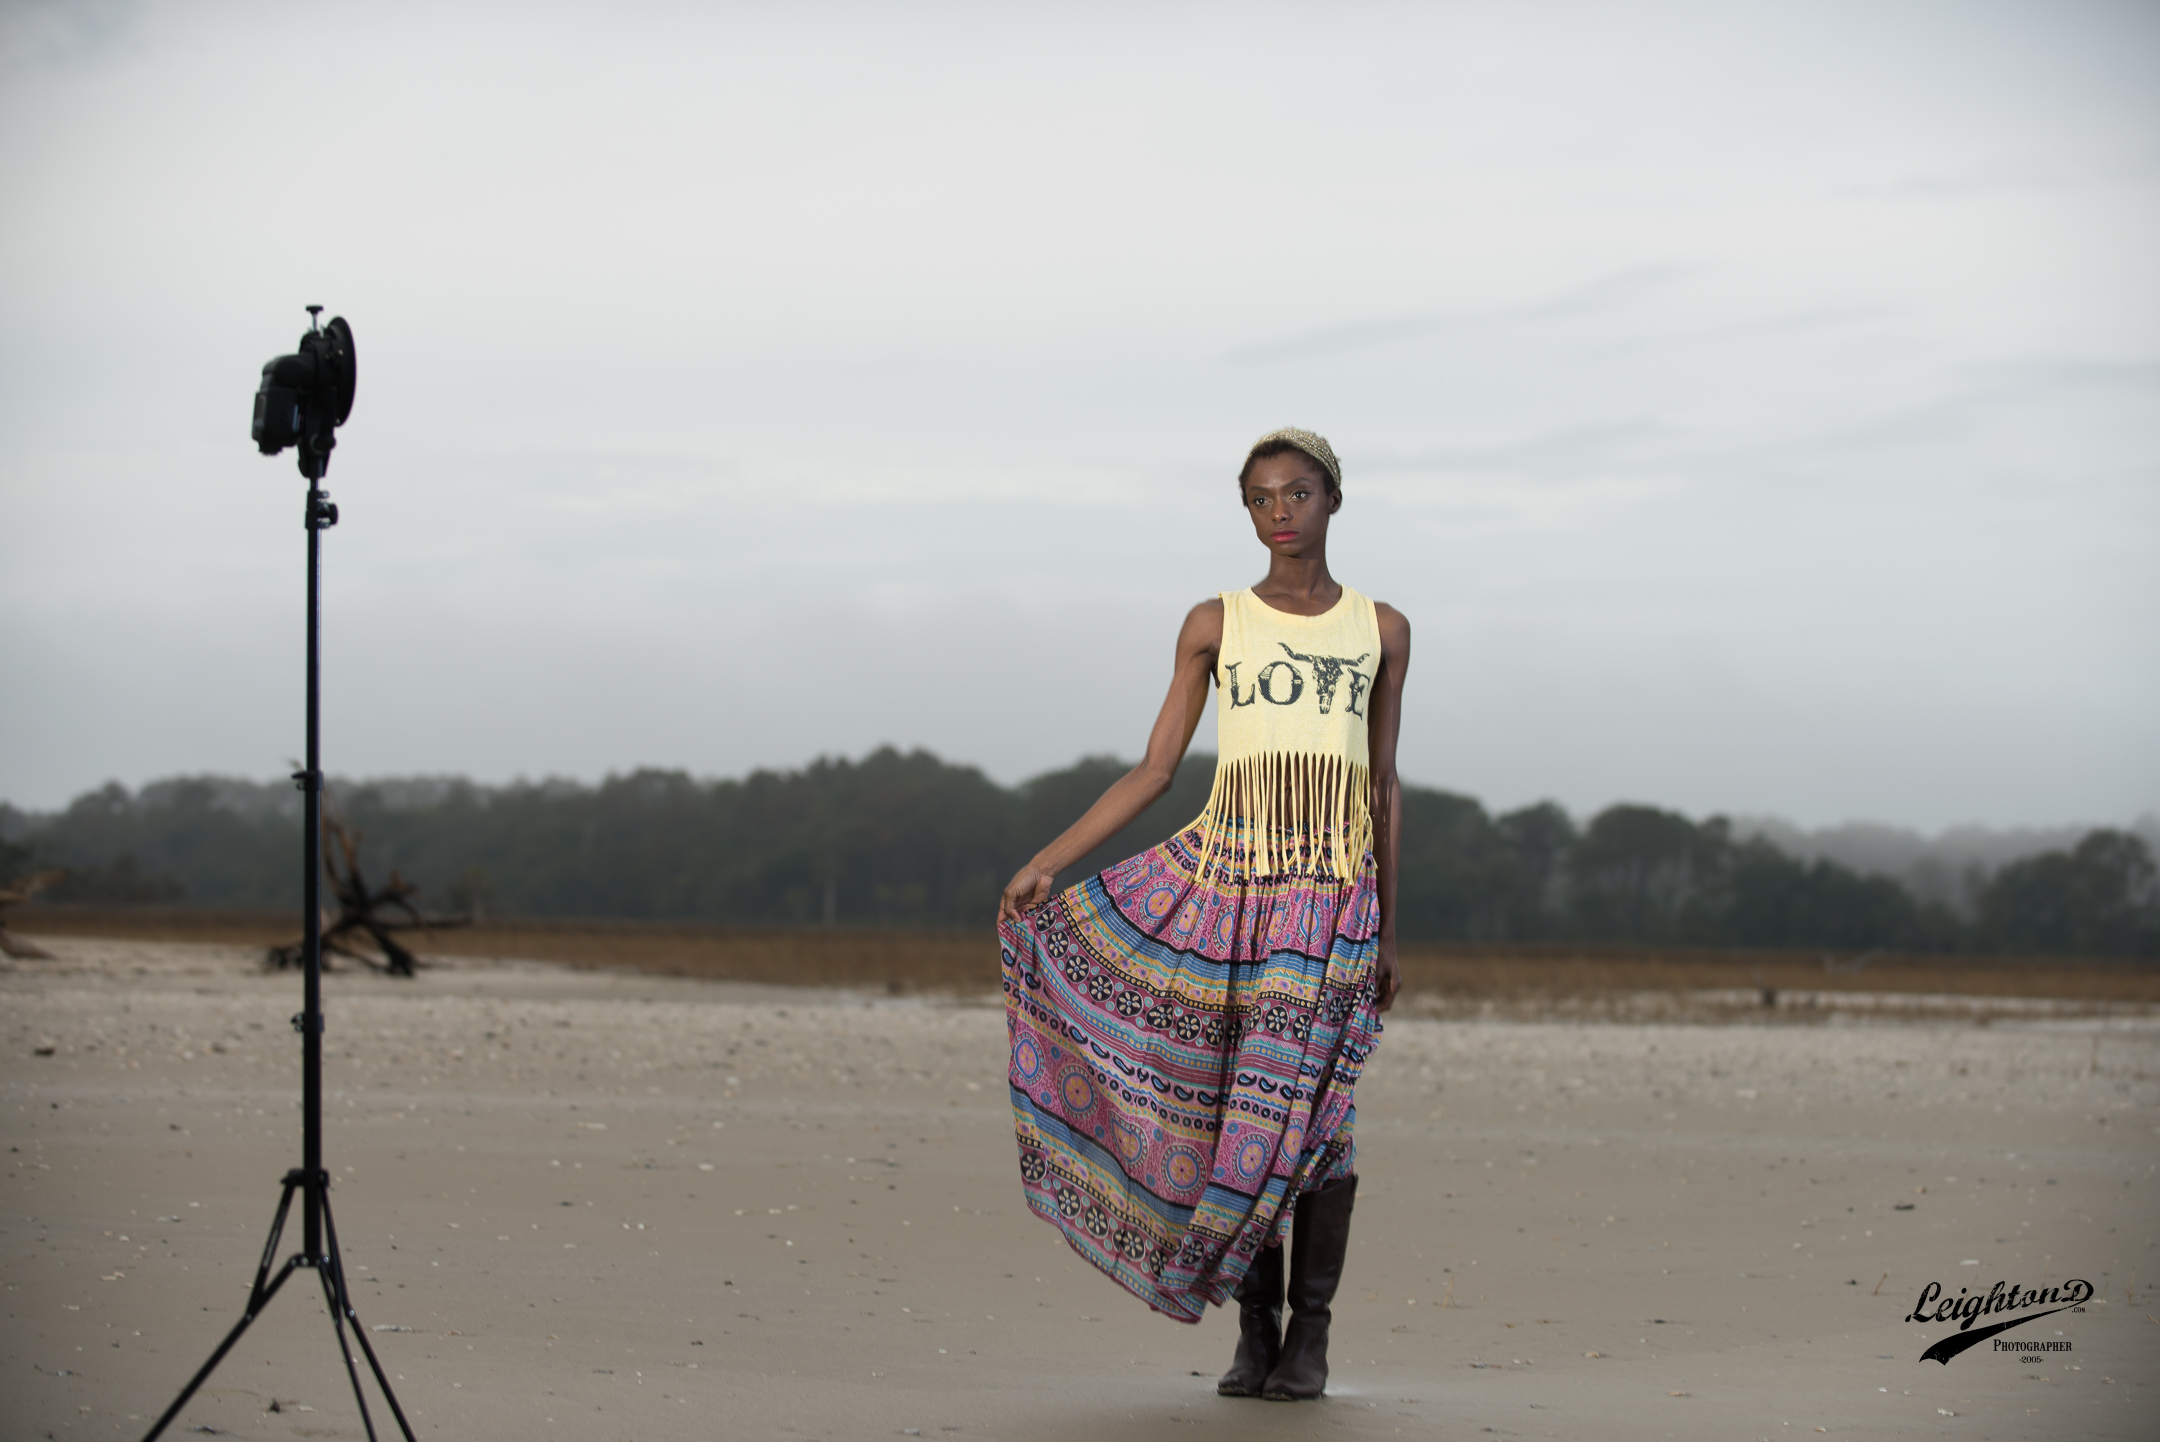 Shante wearing the Love fringe tank from Starcrush Boutique and a skirt from the photographer's private collection